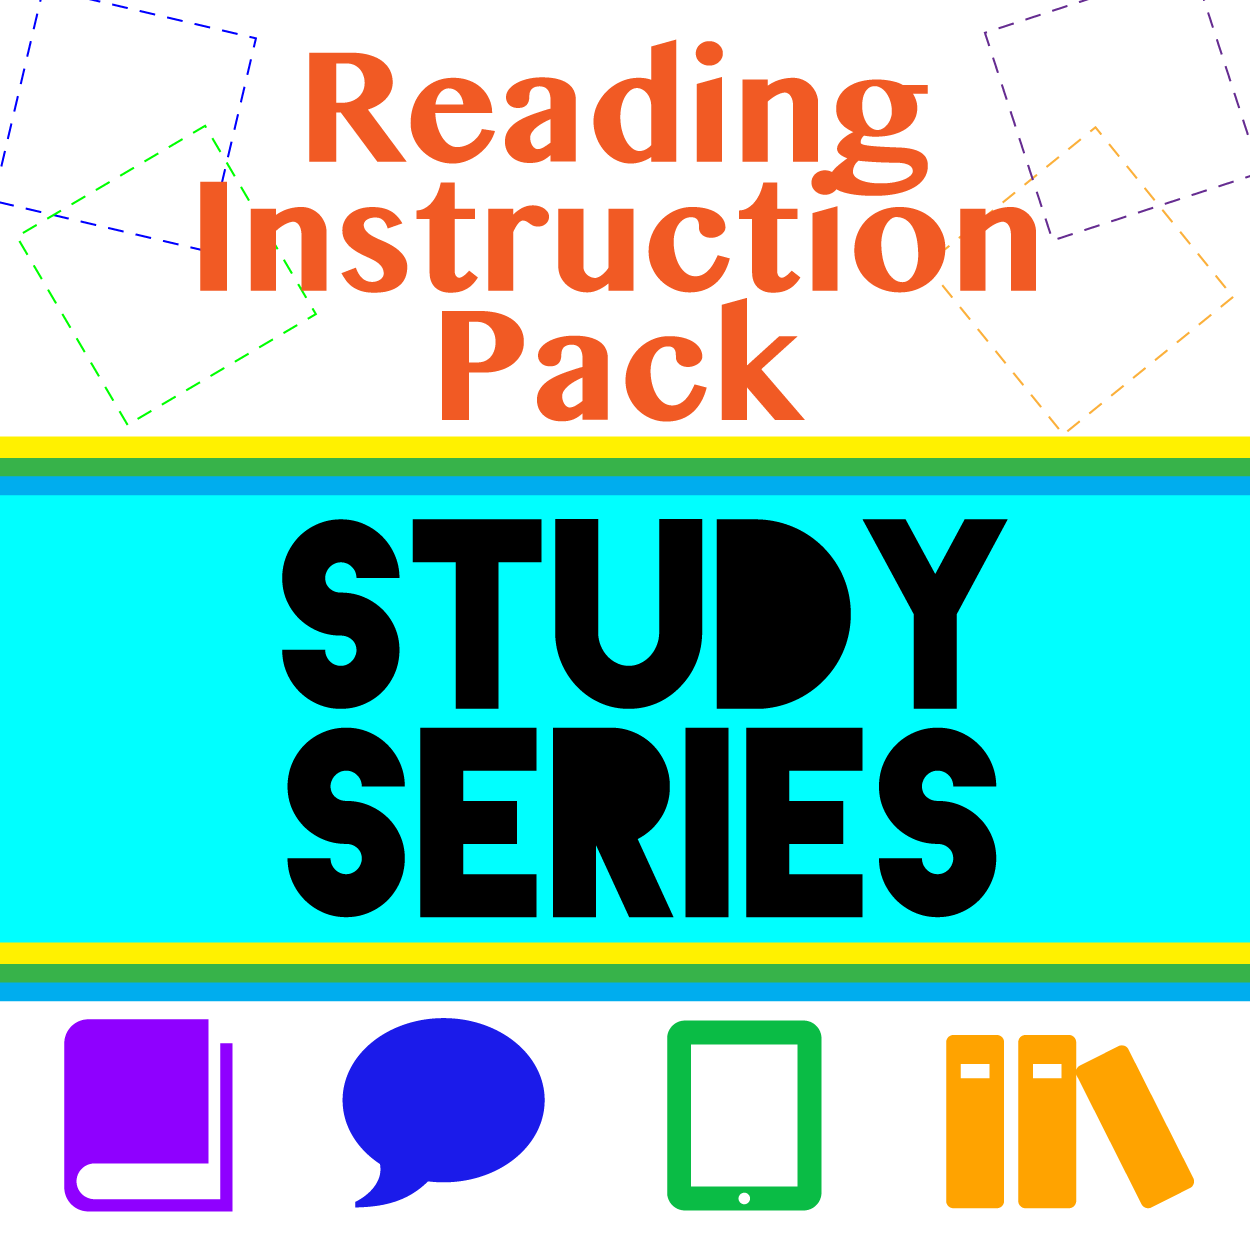 Reading Instruction Study Series Pack – Special Focus on Teaching Student Readers